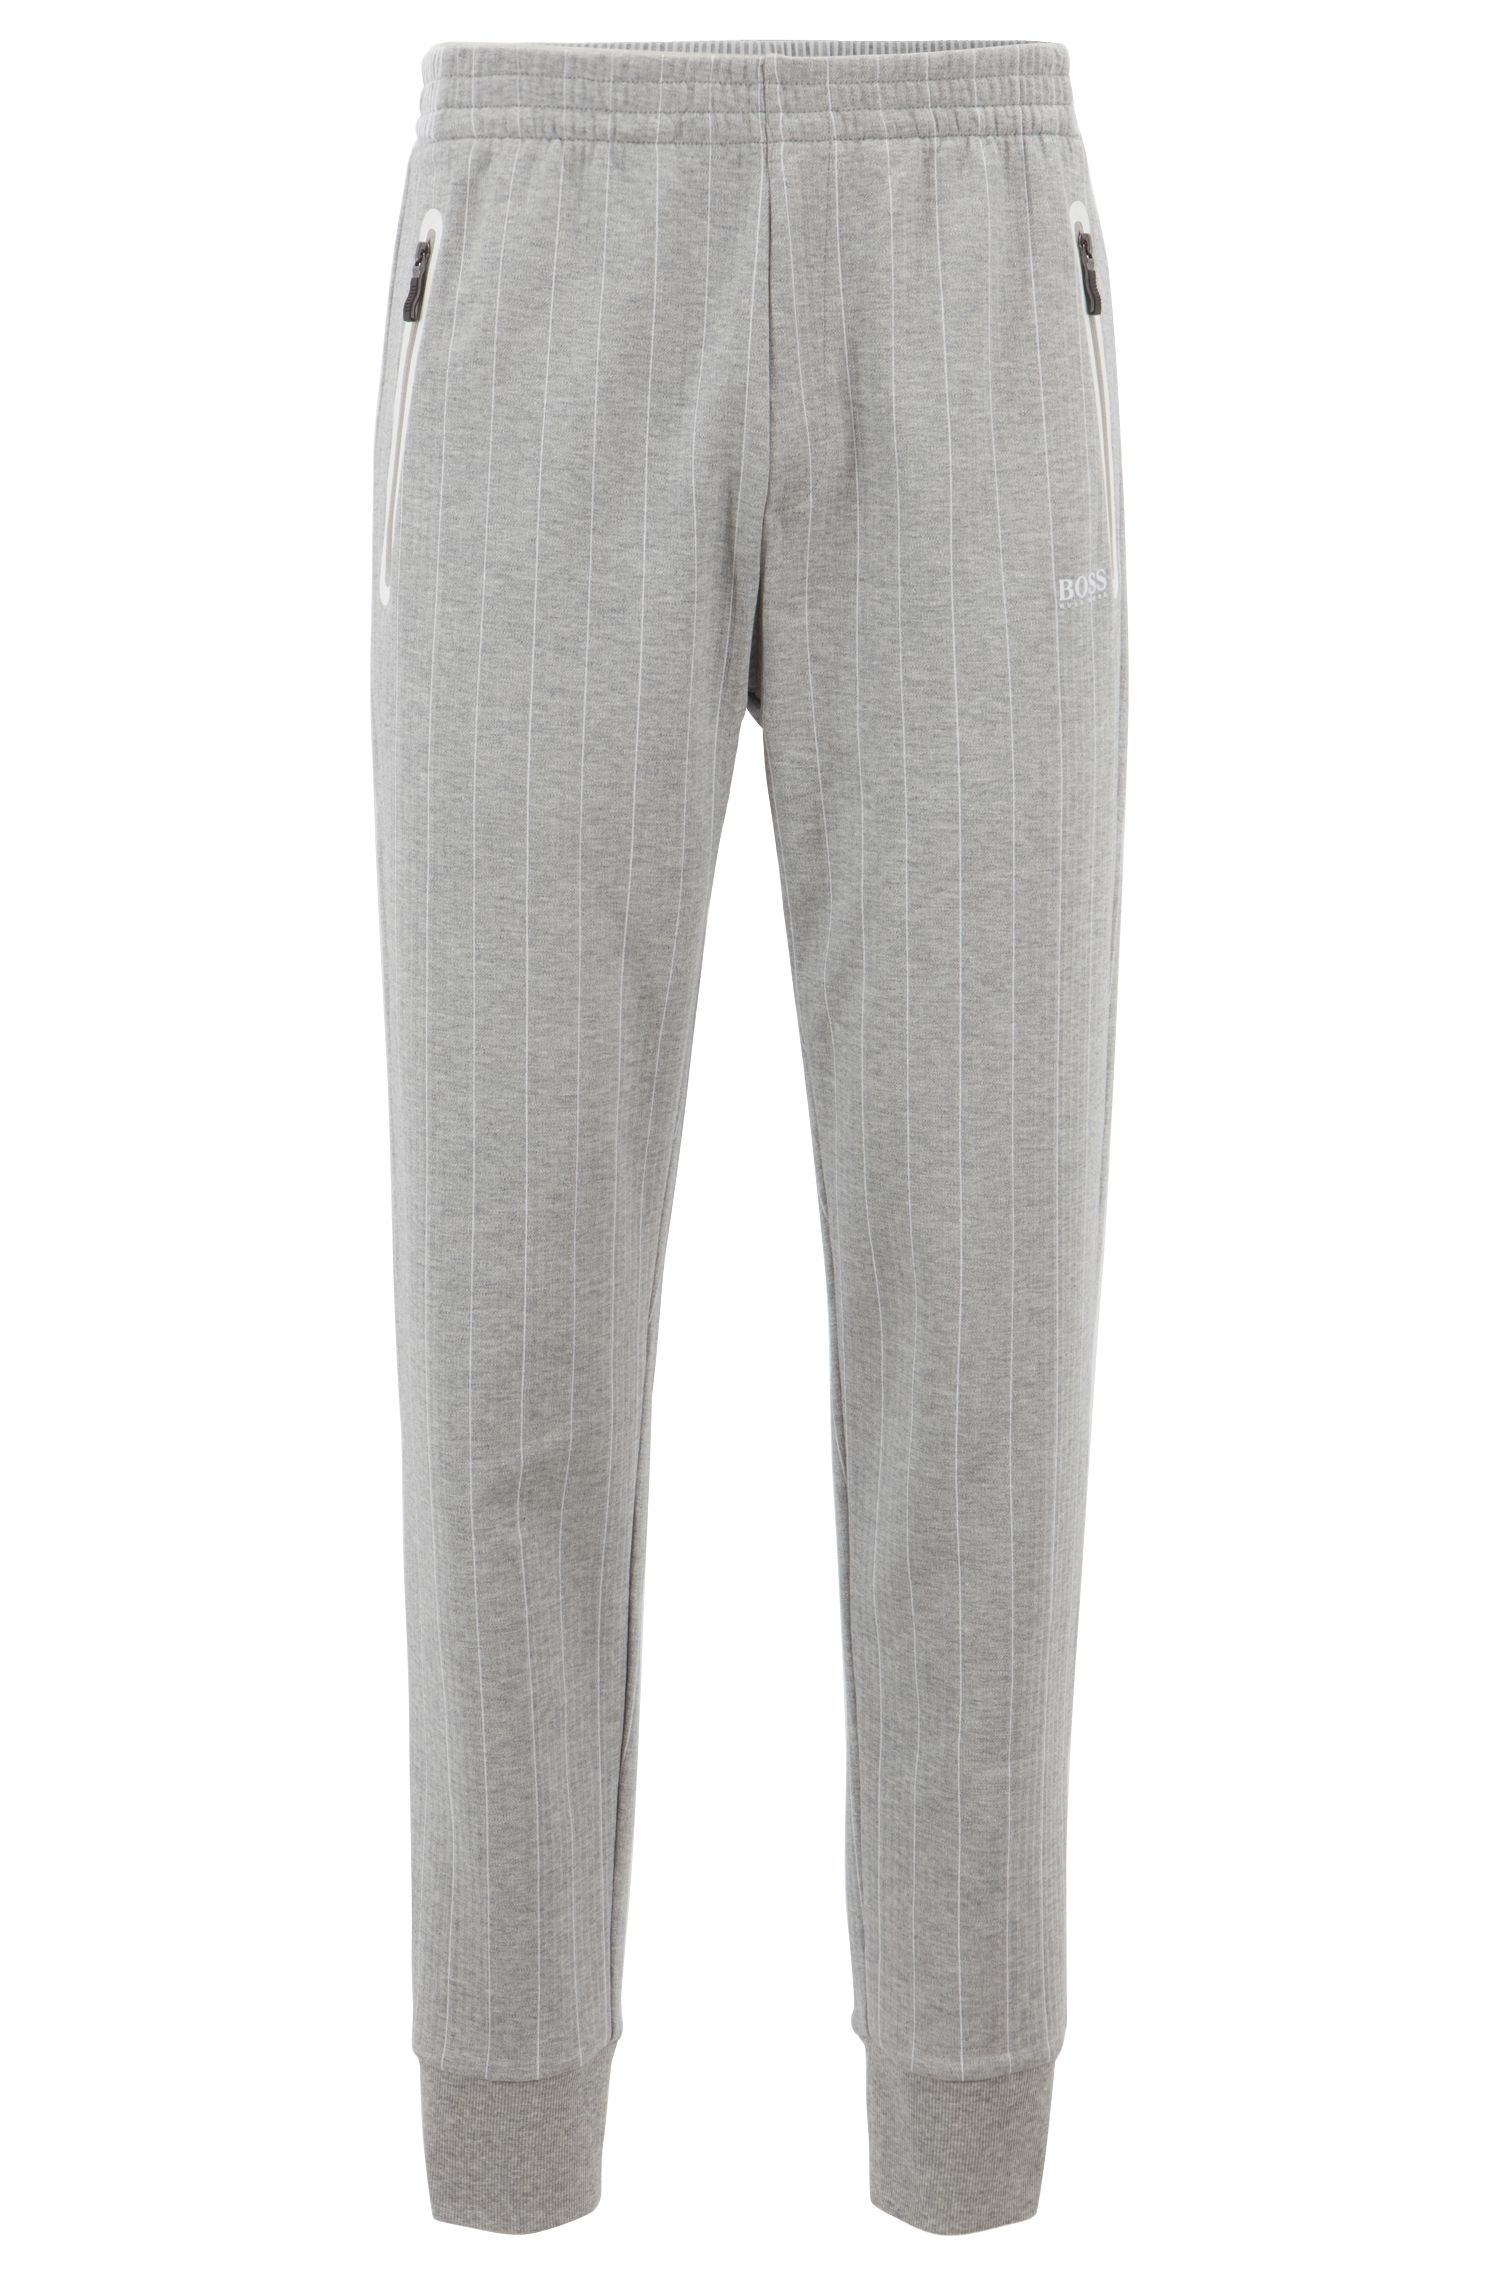 Cuffed jogging bottoms in pinstripe double-faced cotton